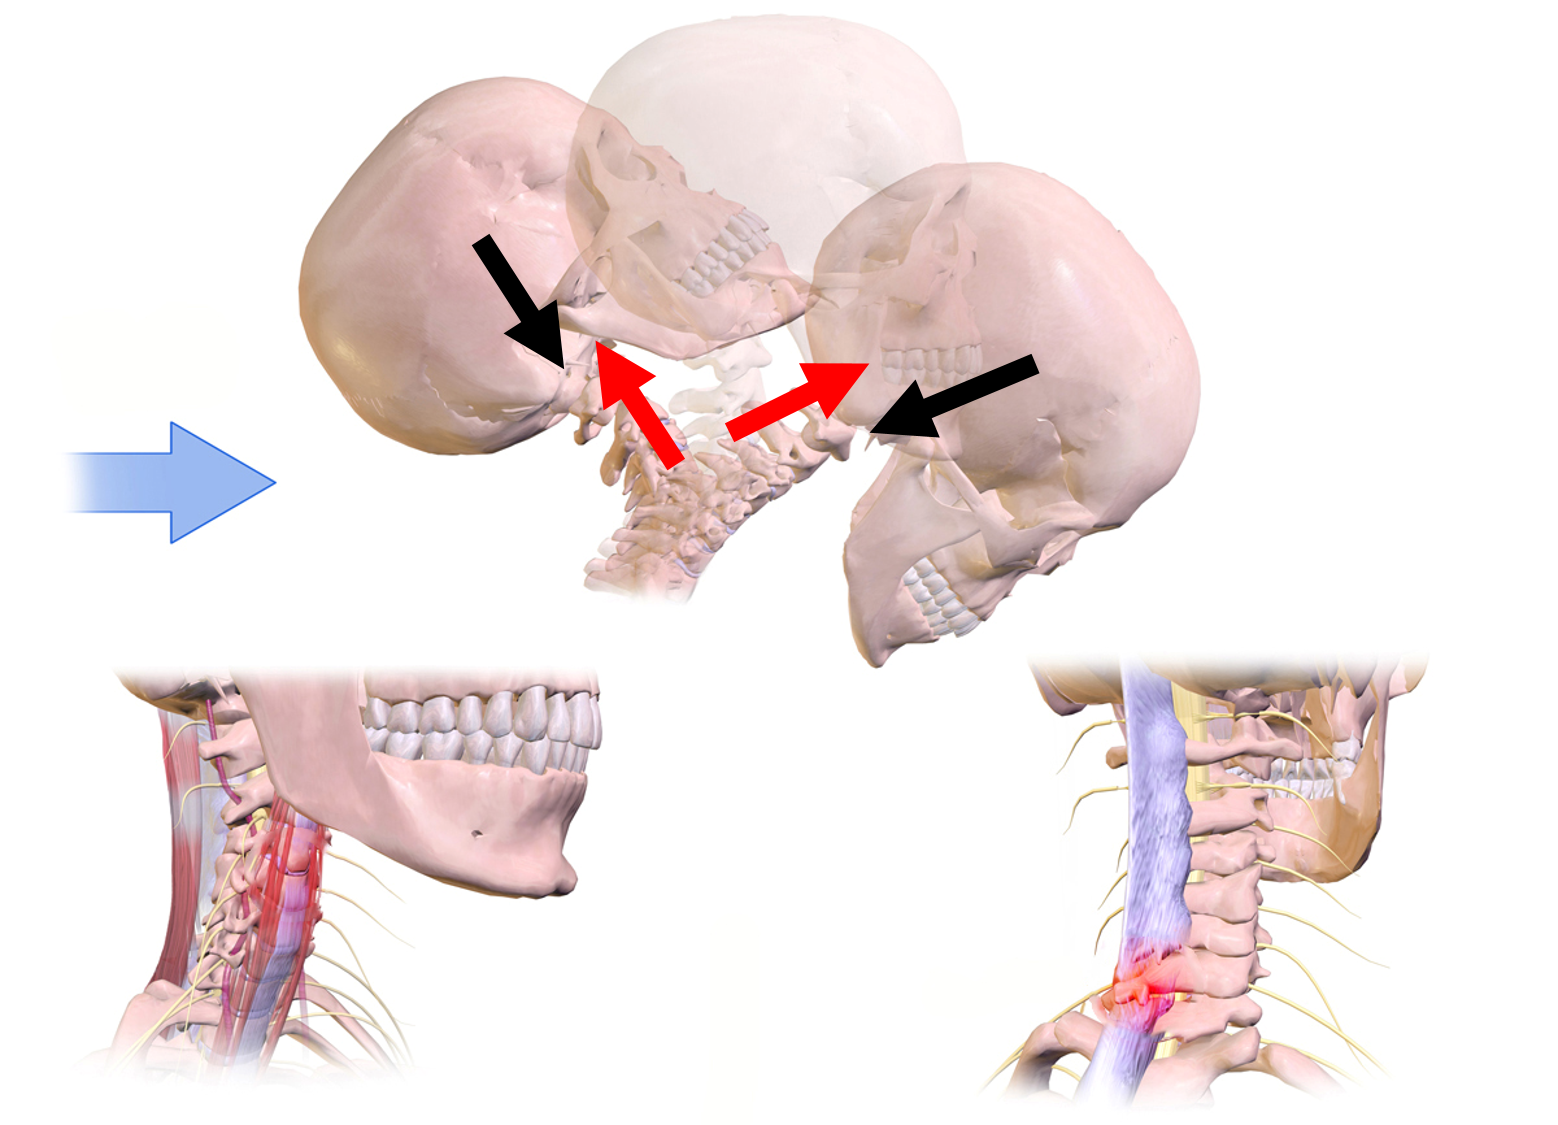 First image: The spine in a near vertical position while the head is moving from an extreme rearward position forward to a face-down position. Force pairs of equal length and opposite direction shown the force of the neck on the head and head back on the neck. Second and third images: Regions of injury on the front of the neck (soft tissue) and back of the neck (soft tissue and spine) are highlighted.